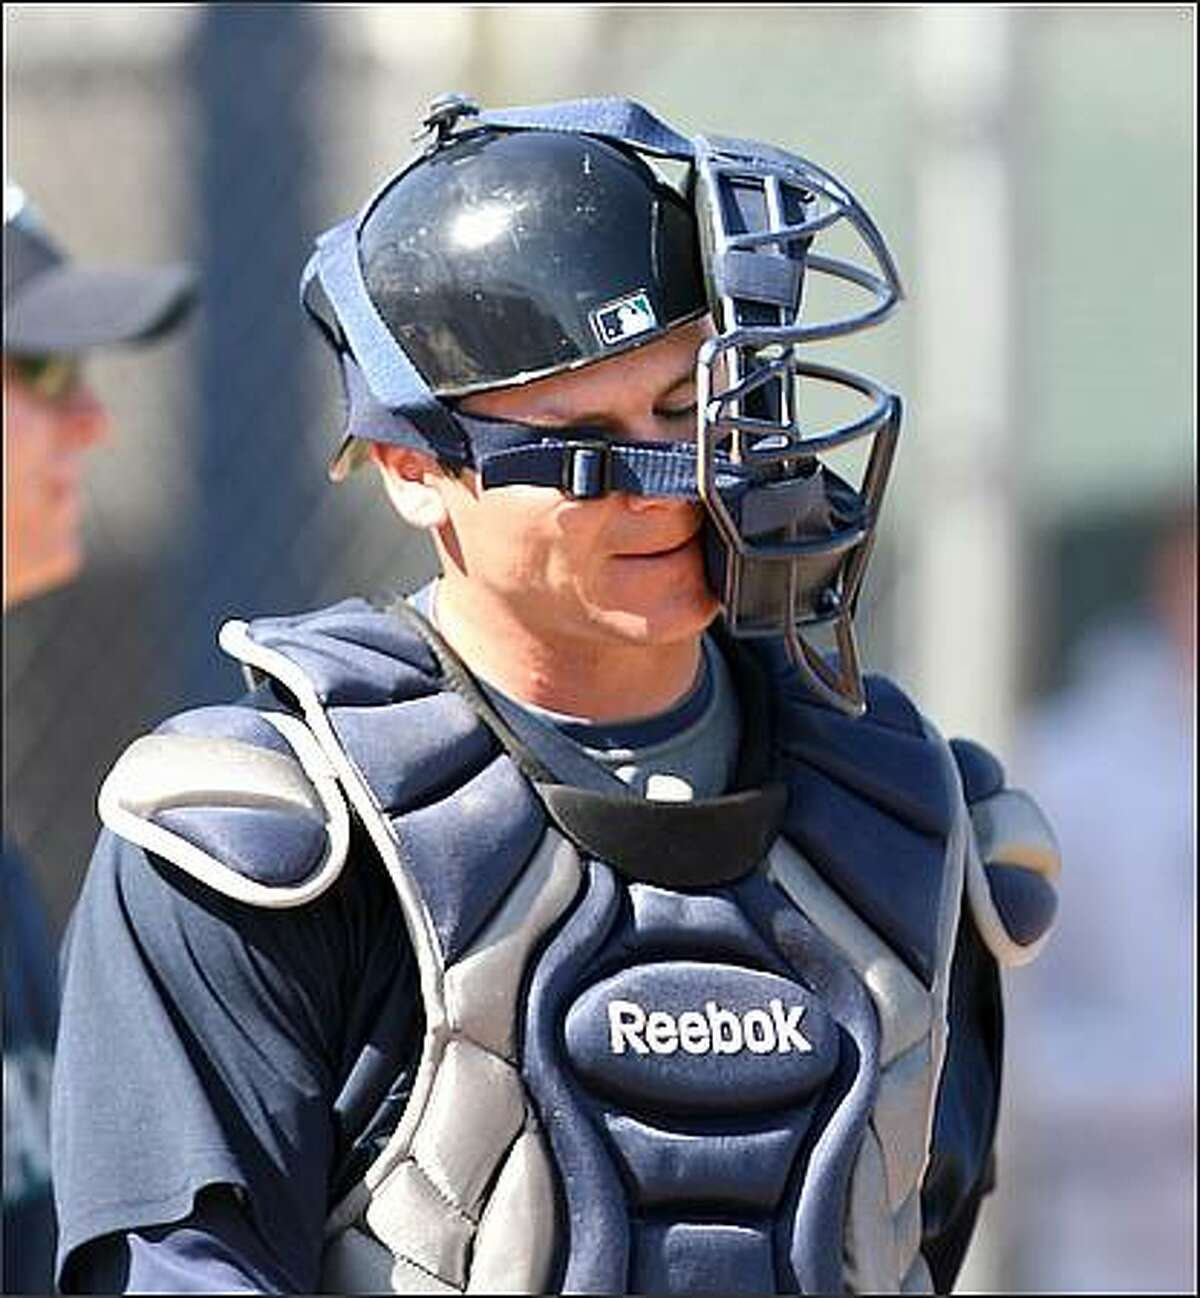 Catcher Rob Johnson's mask sits askew after he made a throw to second base during a drill at the Seattle Mariners spring training facility in Peoria, Ariz.